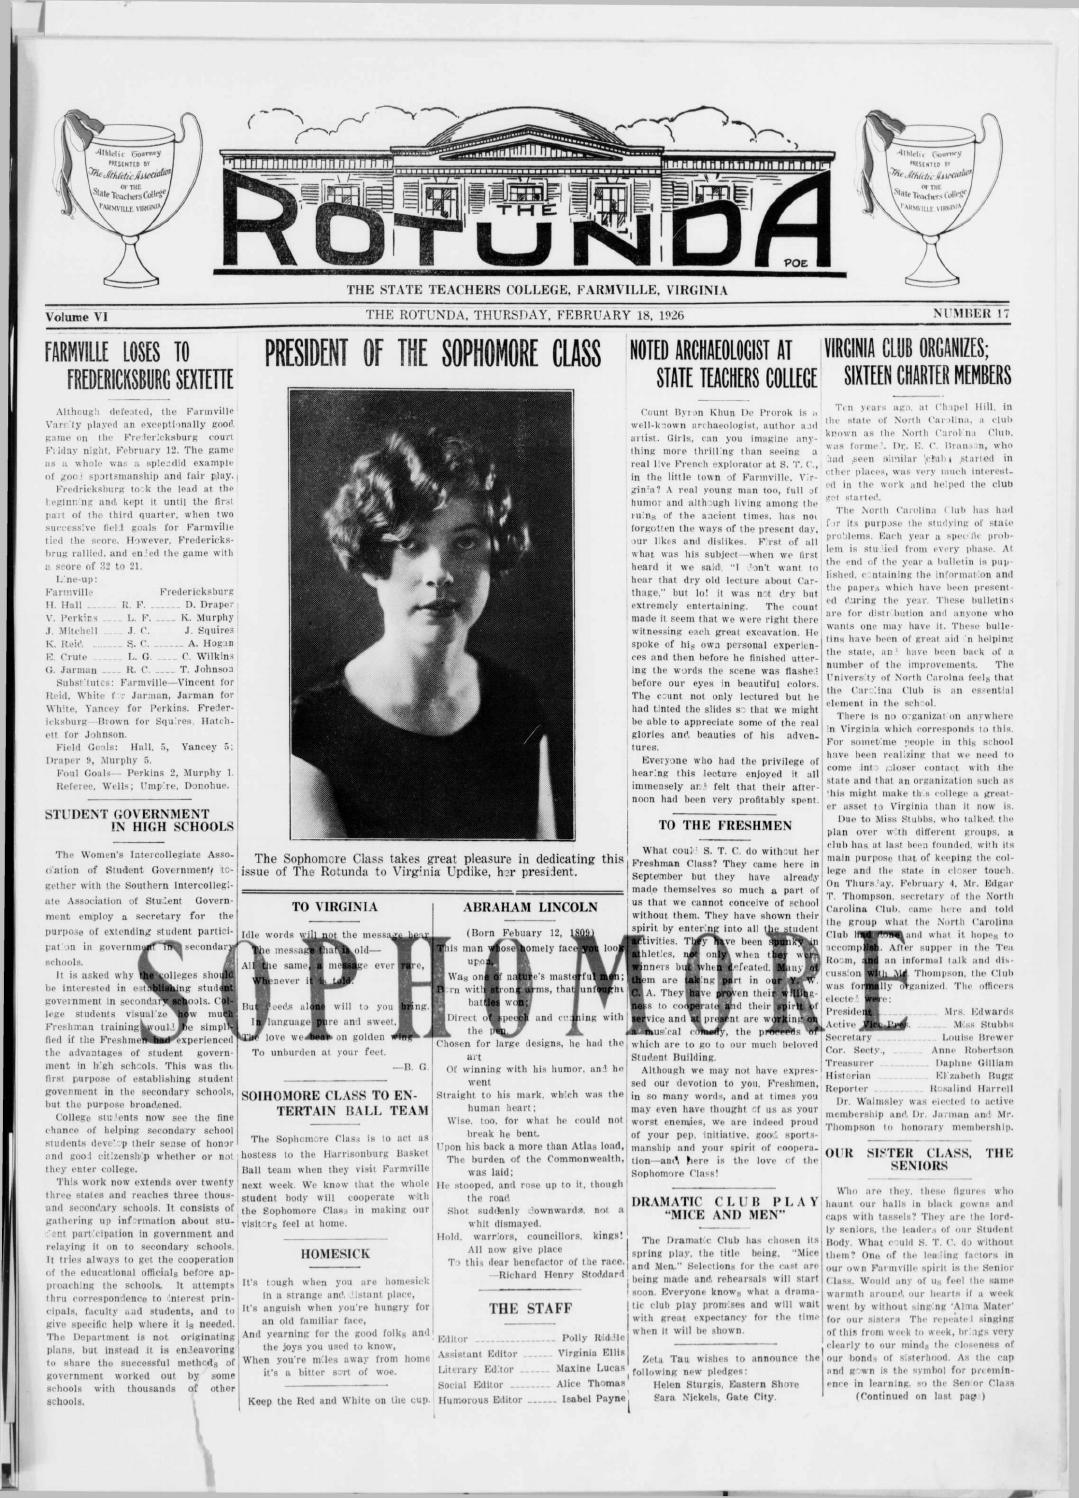 Rotunda vol 6, no 17 feb 18, 1926 by Greenwood Library - issuu